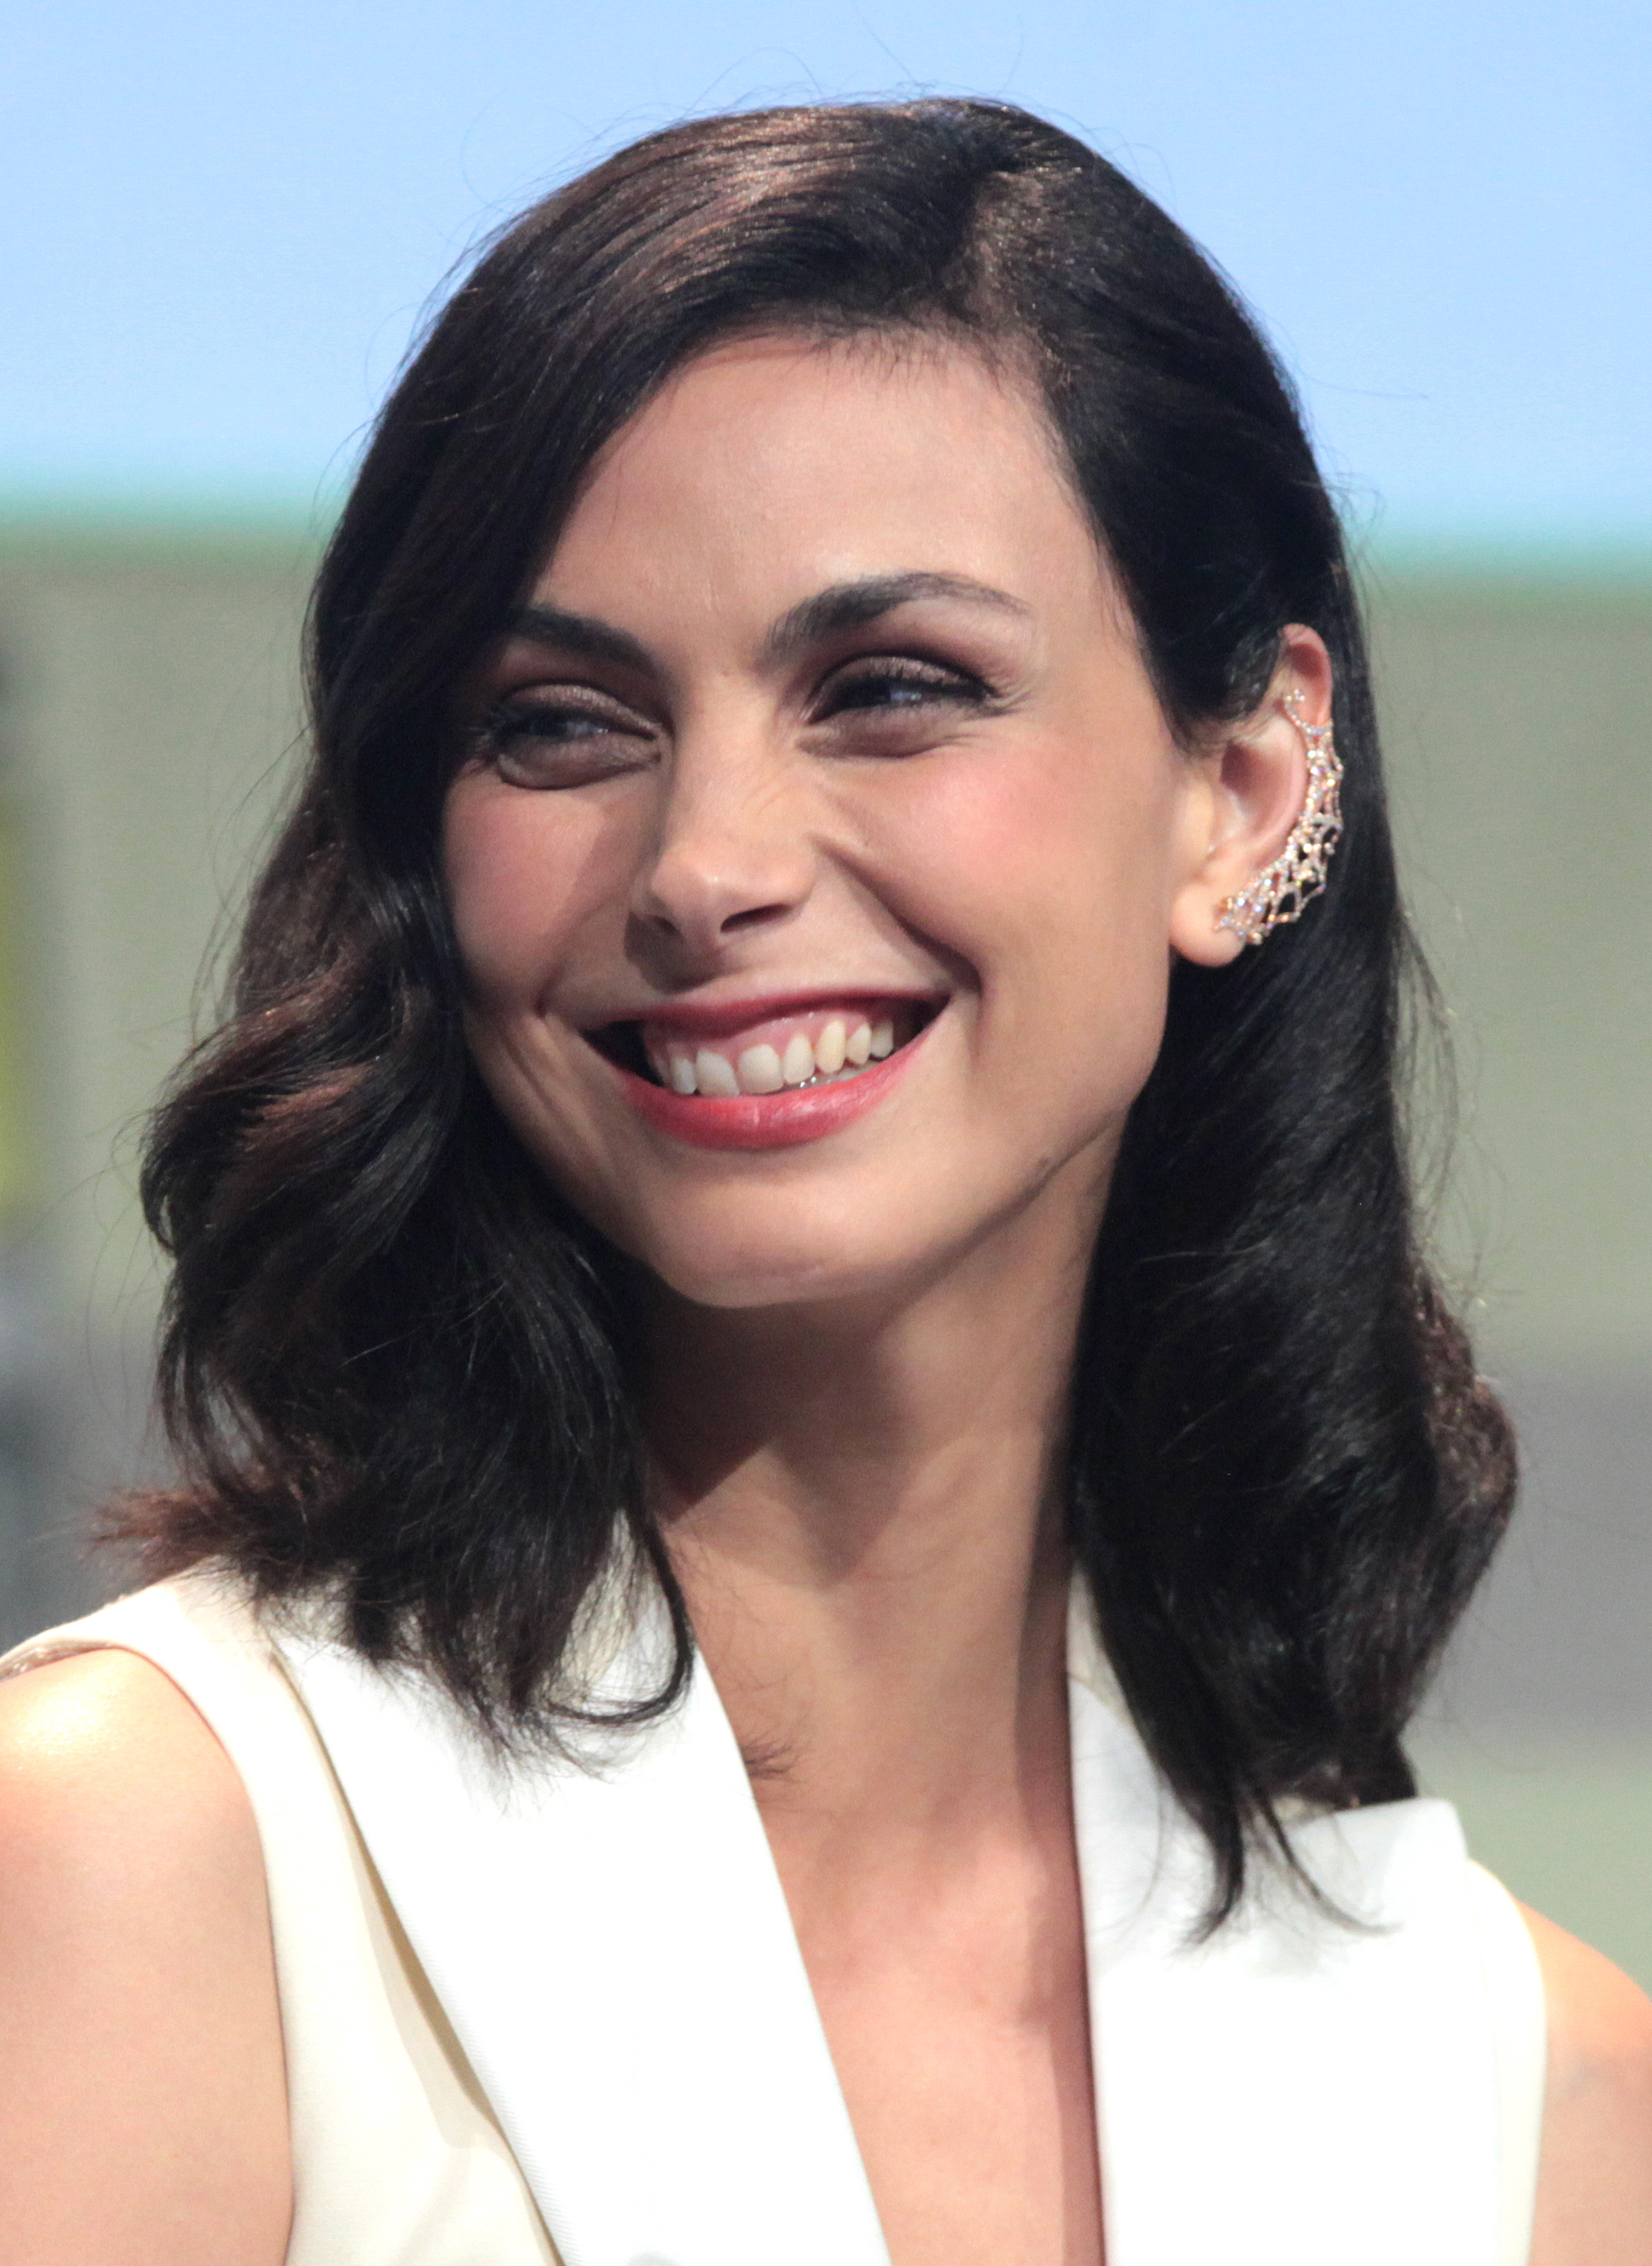 Morena Baccarin Biography